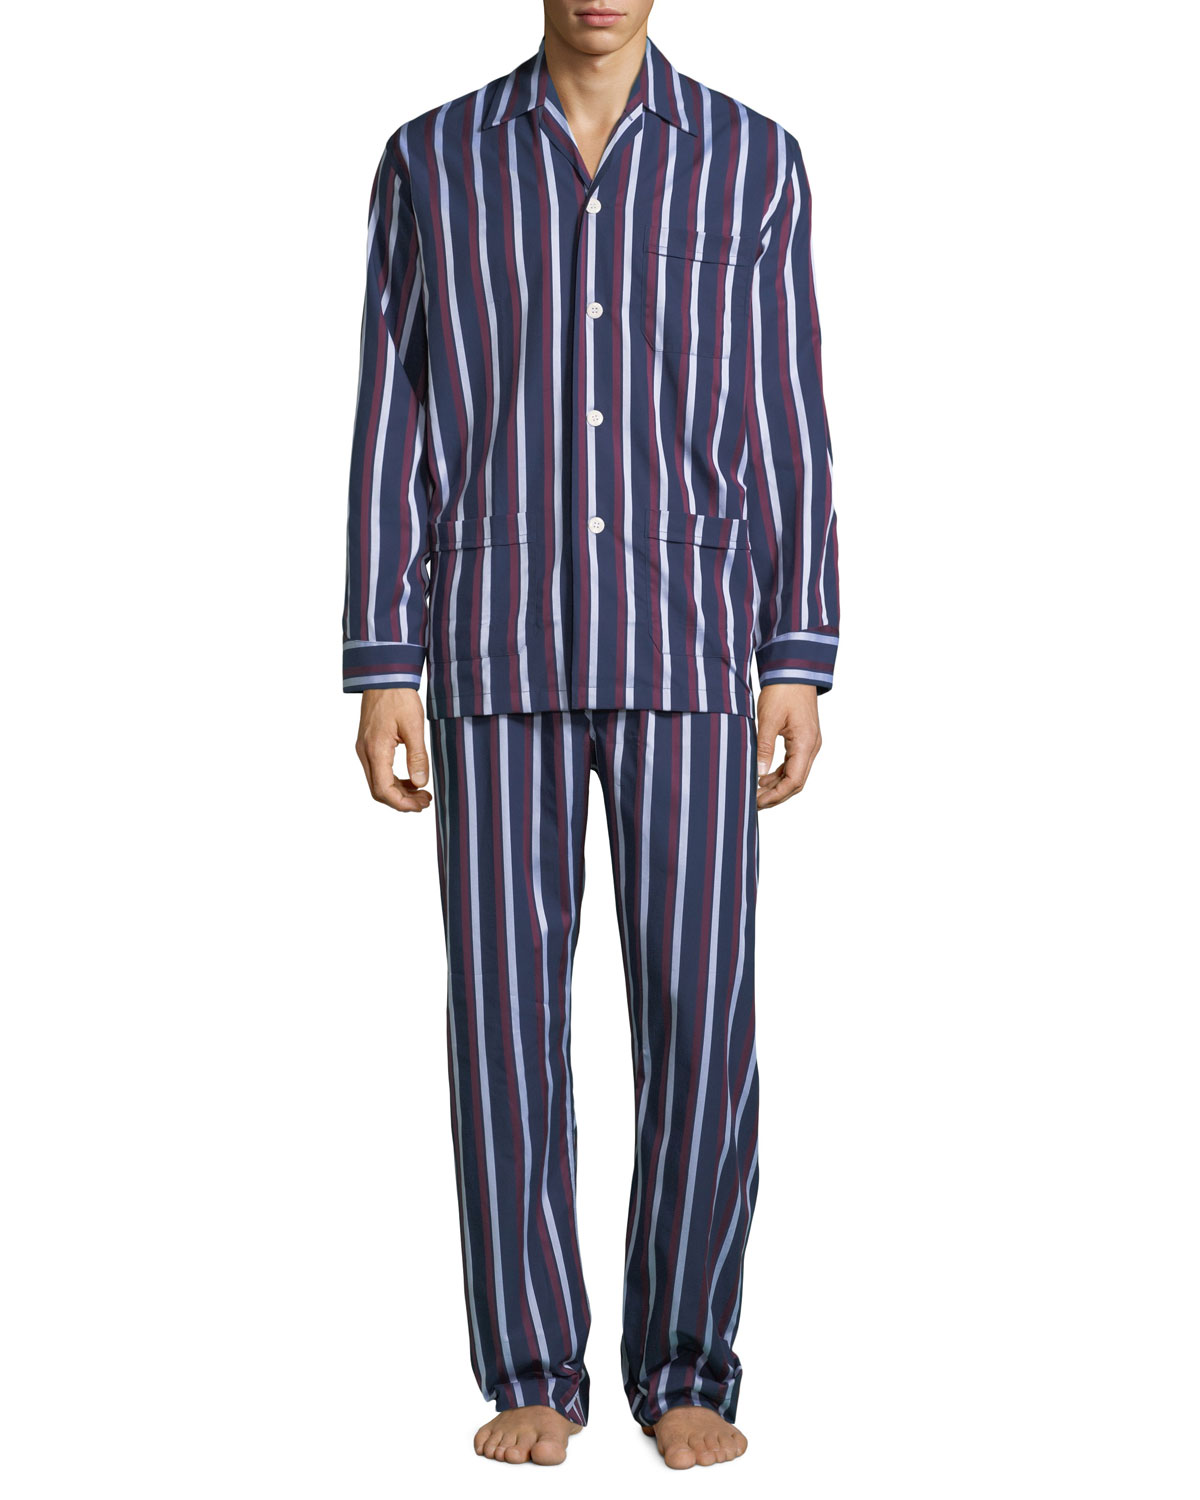 MEN'S ROYAL 210 STRIPED CLASSIC PAJAMA SET from Neiman Marcus